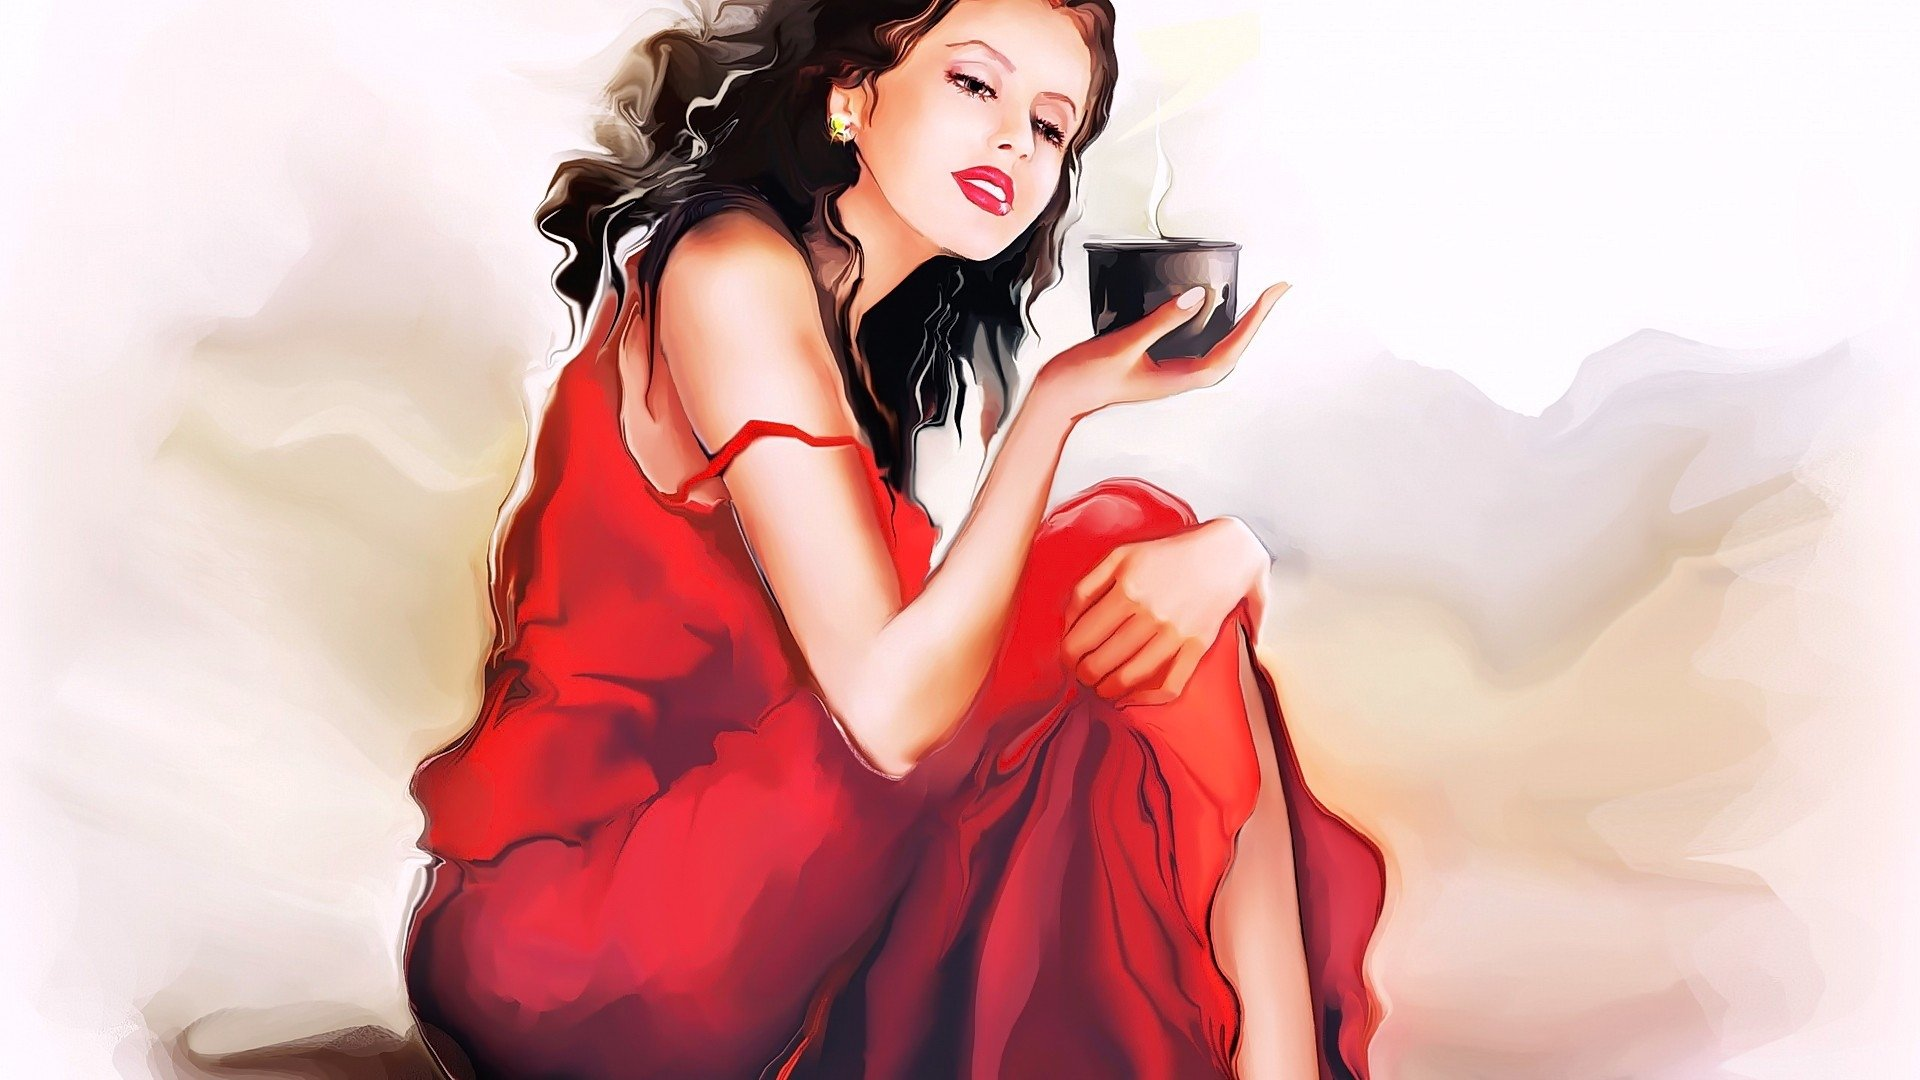 Artistic - Painting  Red Dress Brunette Lipstick Artistic Drawing Woman Wallpaper